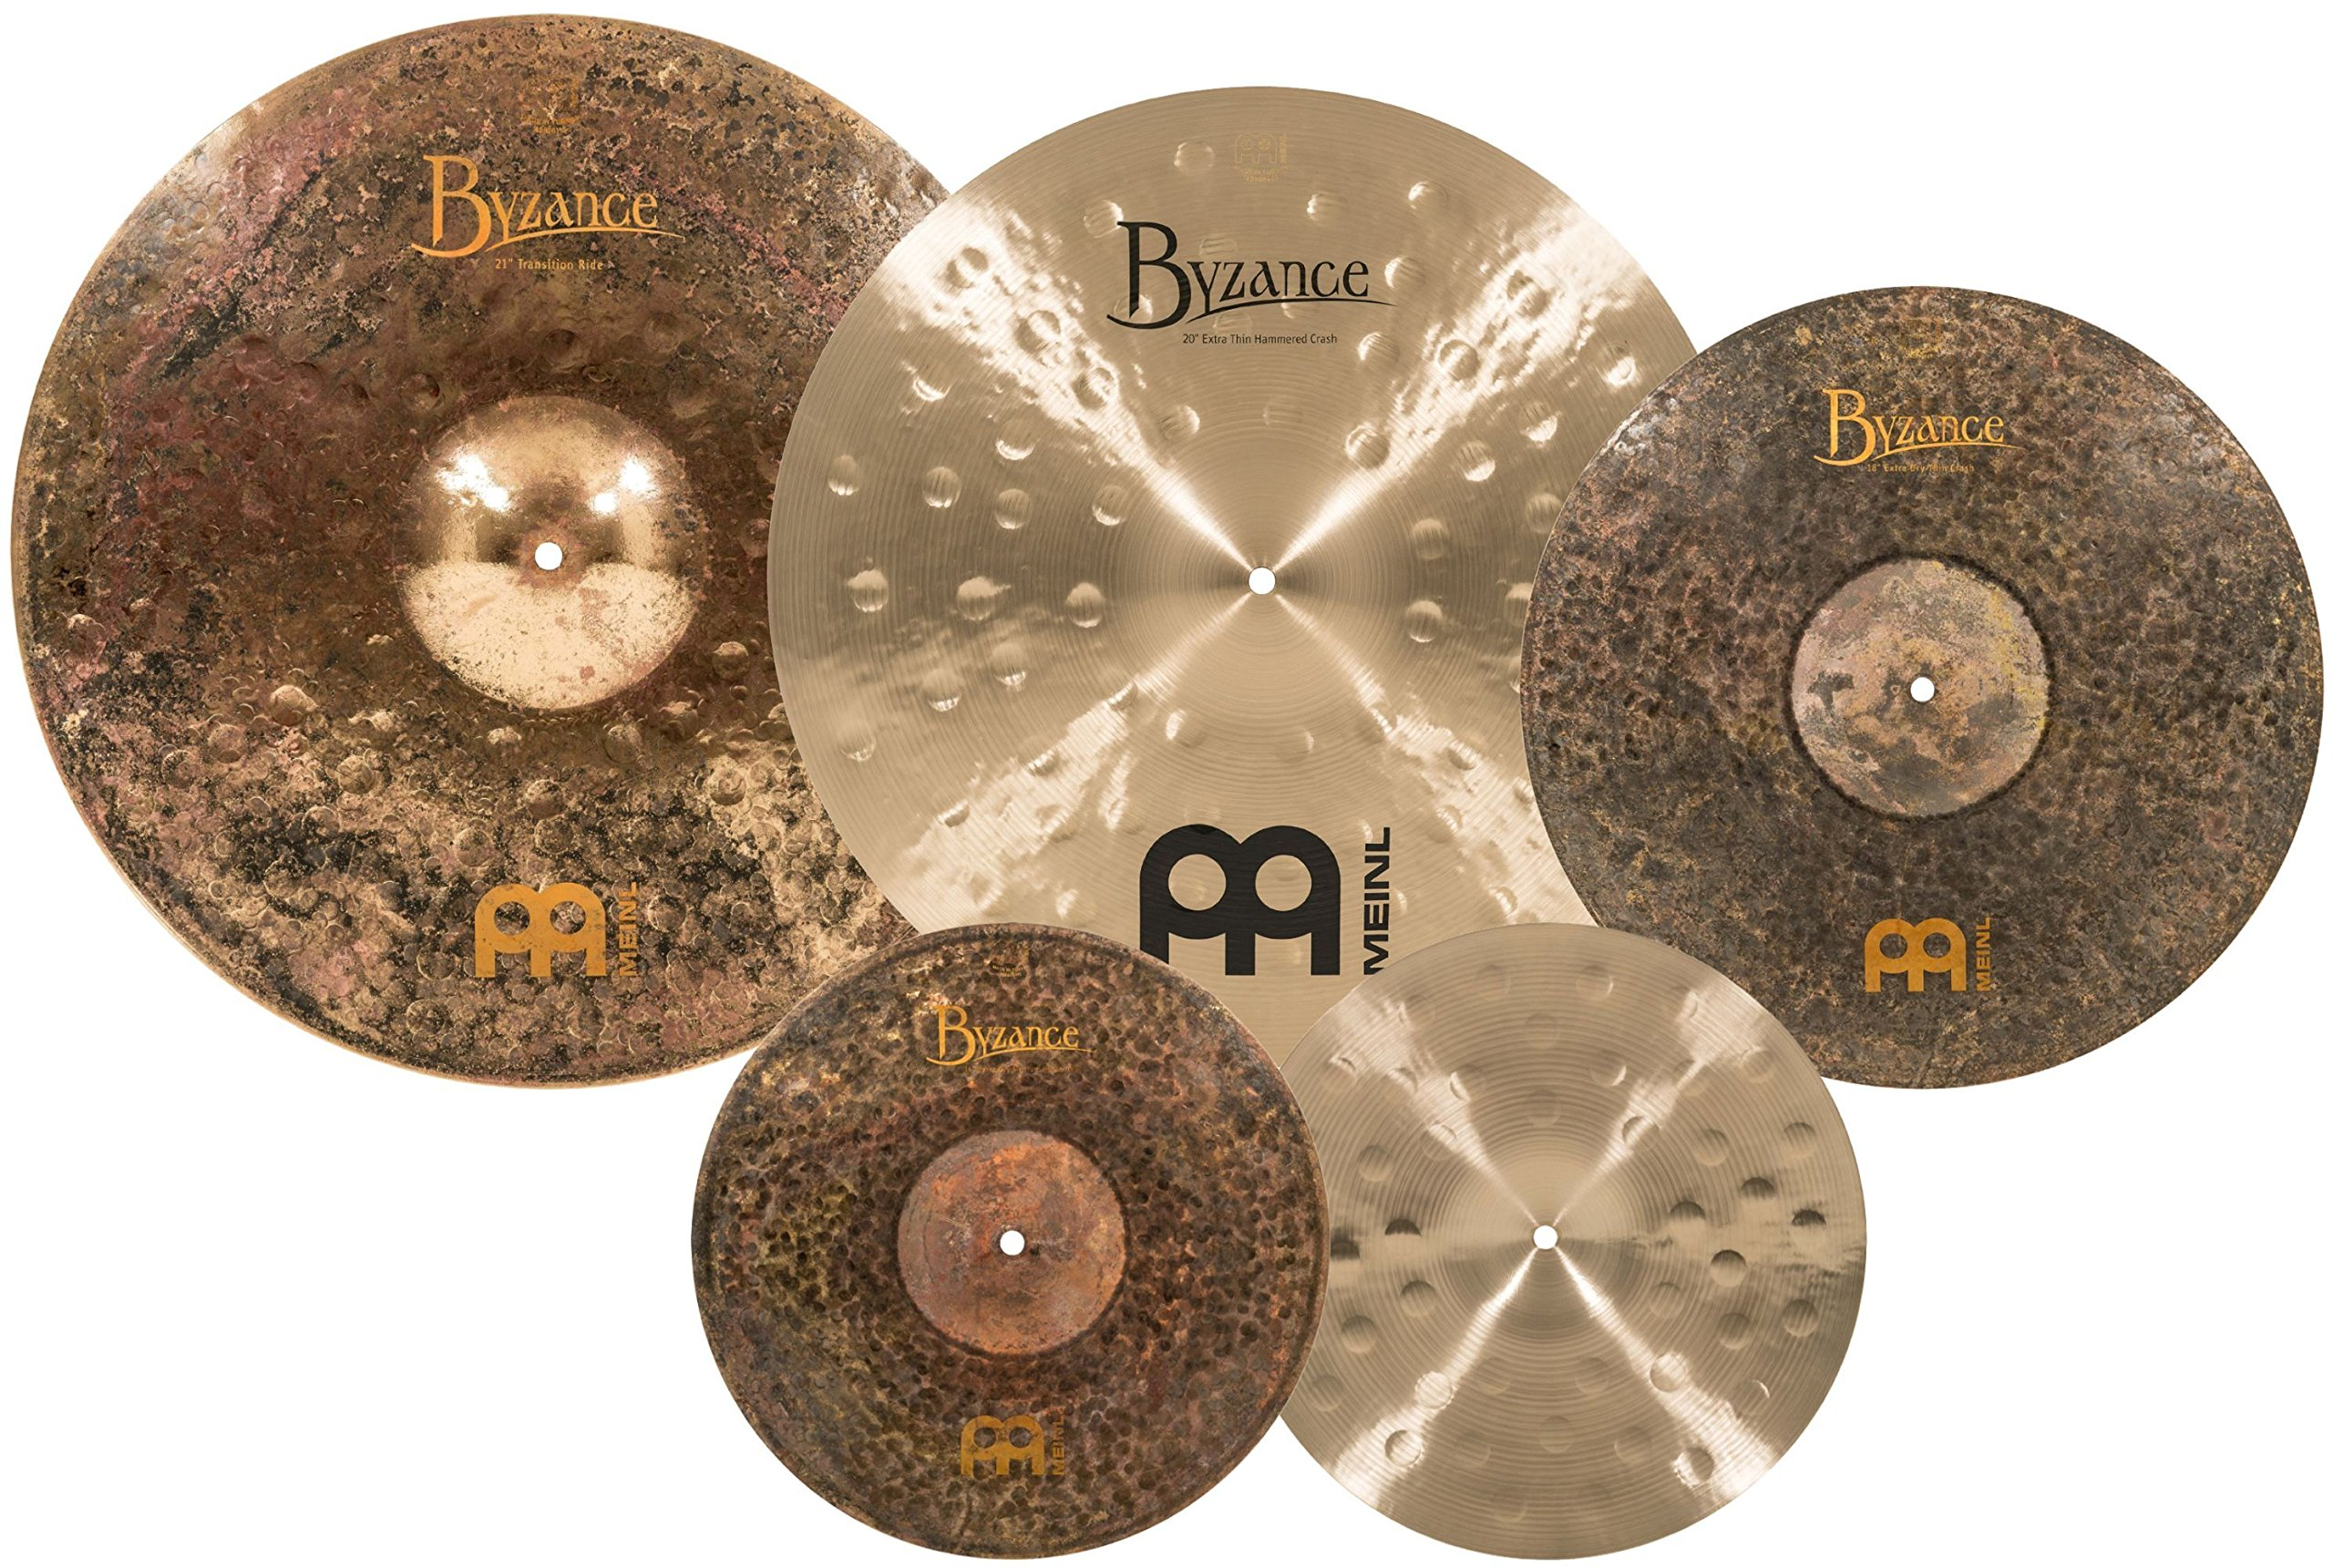 Meinl Cymbals MJ401+18 Mike Johnston Pack Byzance Cymbal Box Set with Free 18'' Byzance Extra Dry Thin Crash (VIDEO)